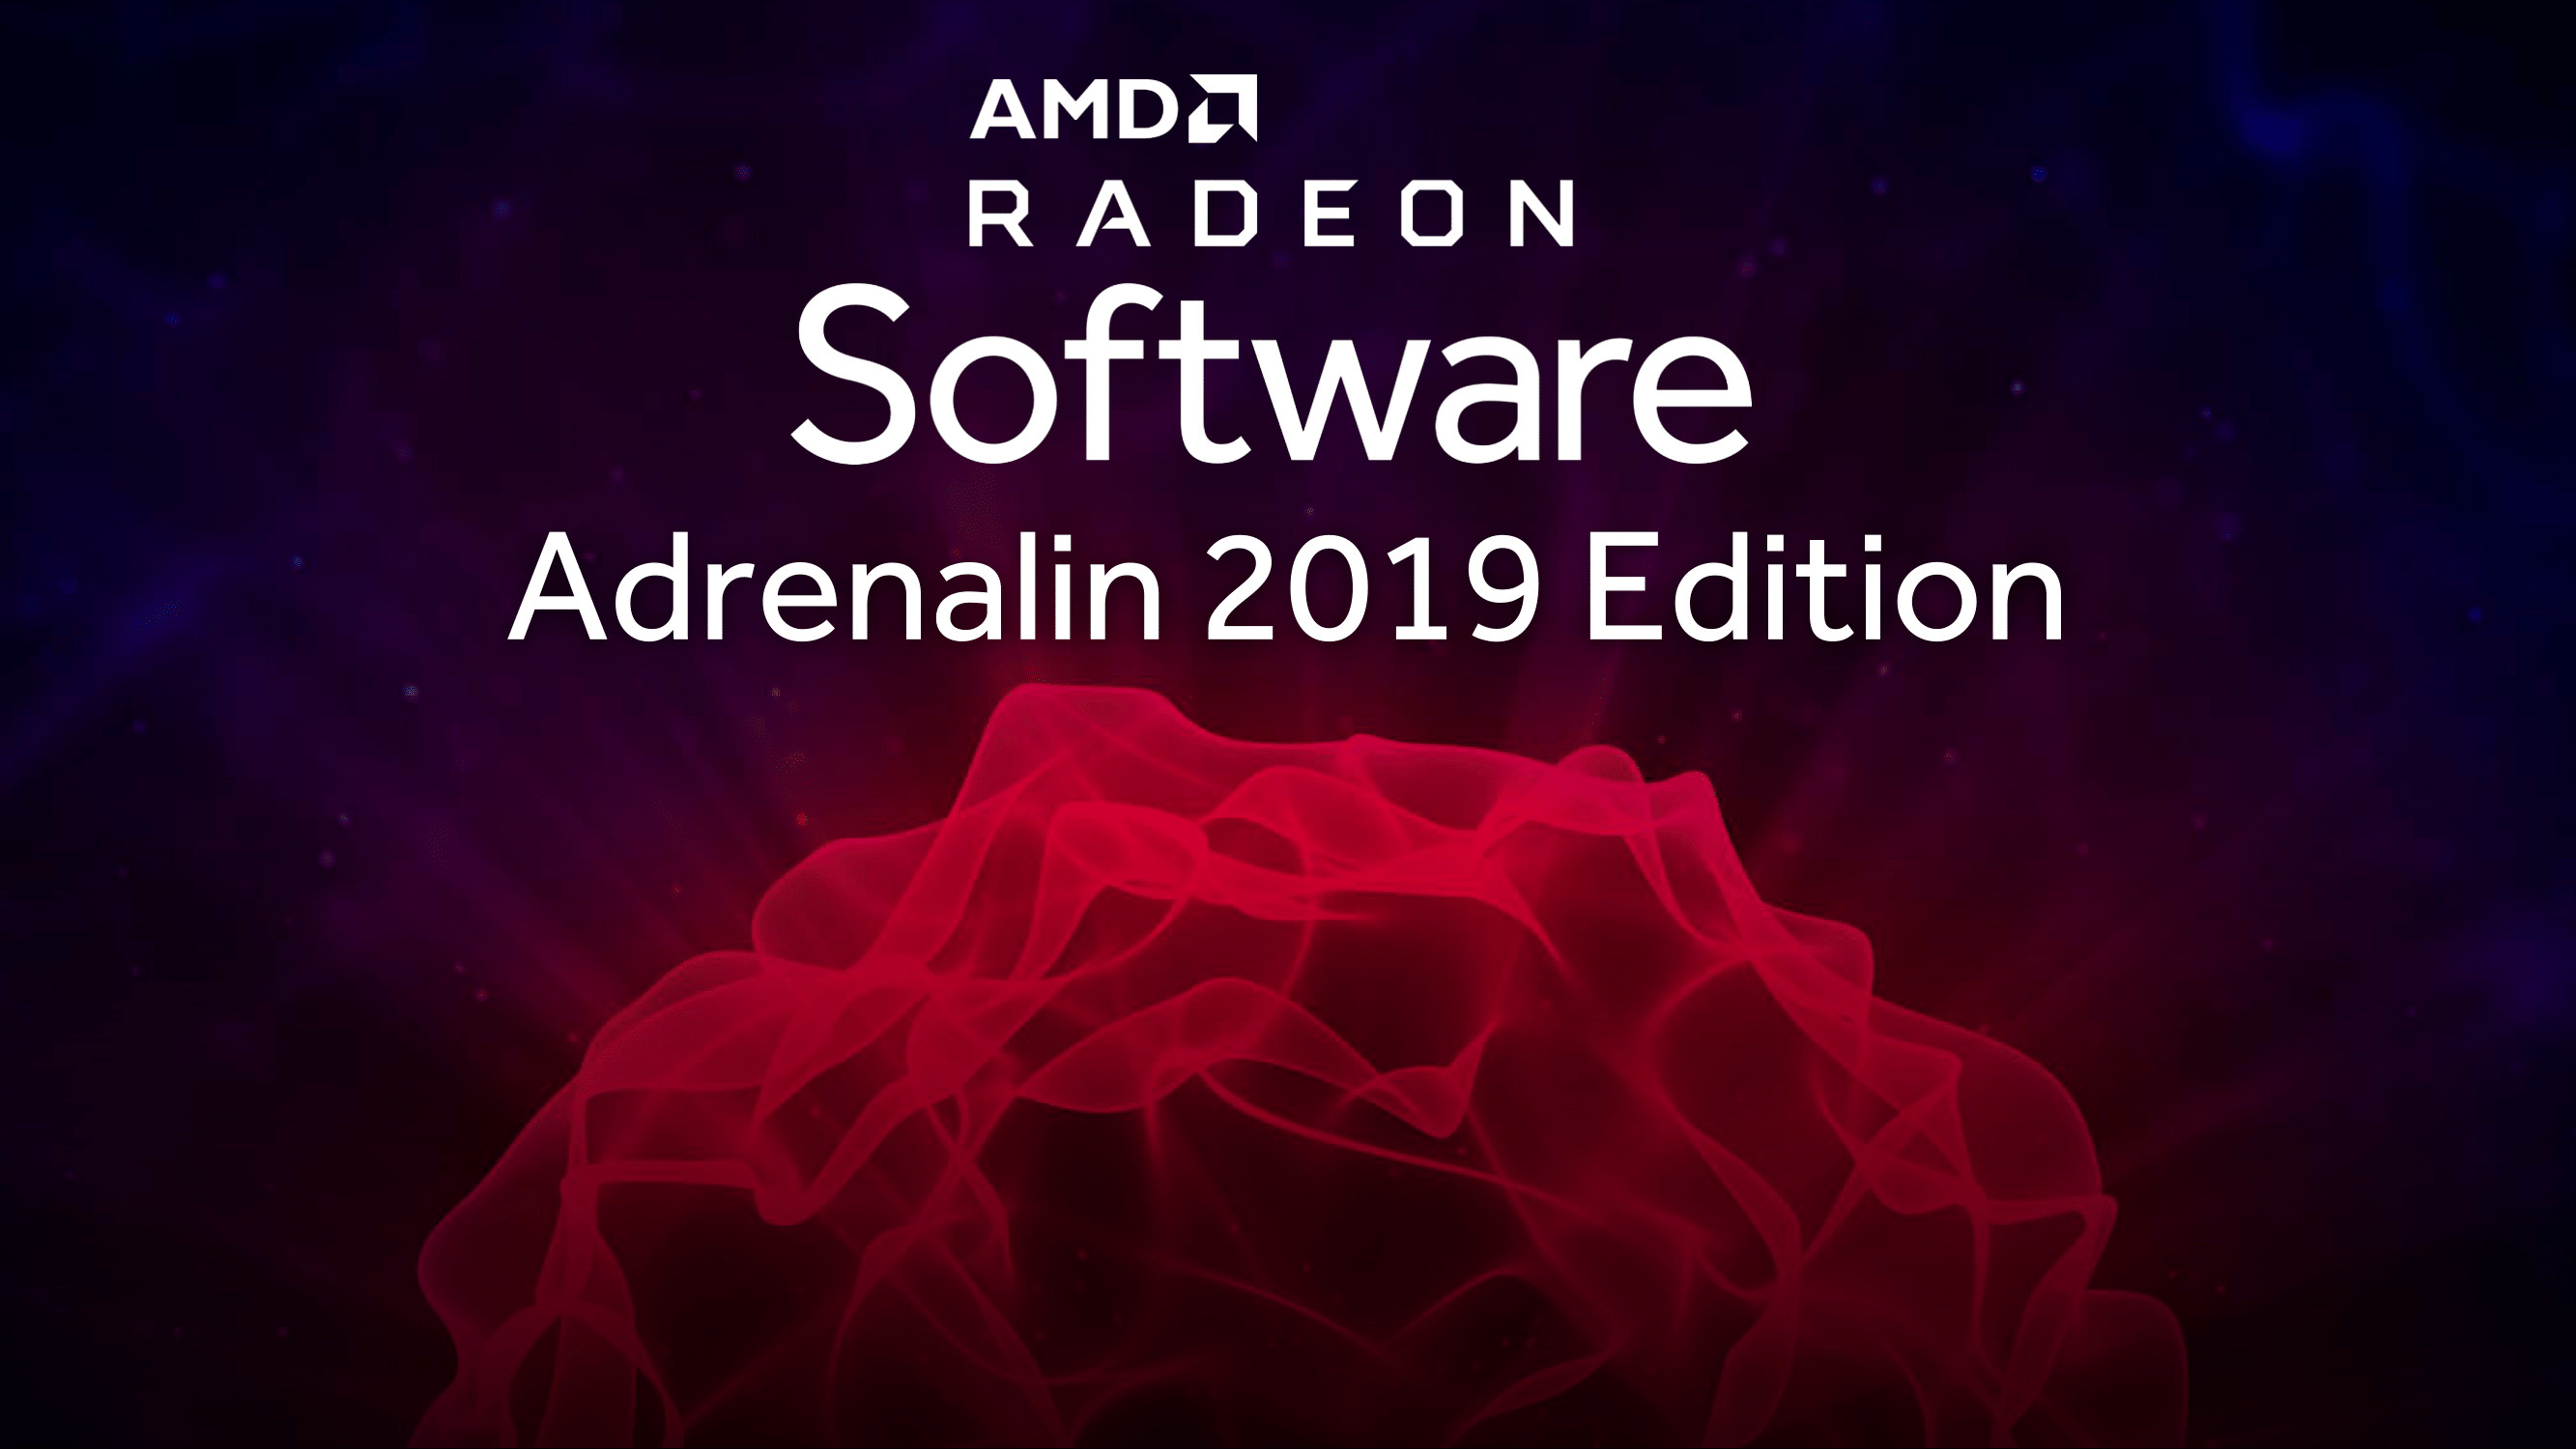 AMD Radeon 18 12 3 driver has bug fixes for new Adrenalin 2019